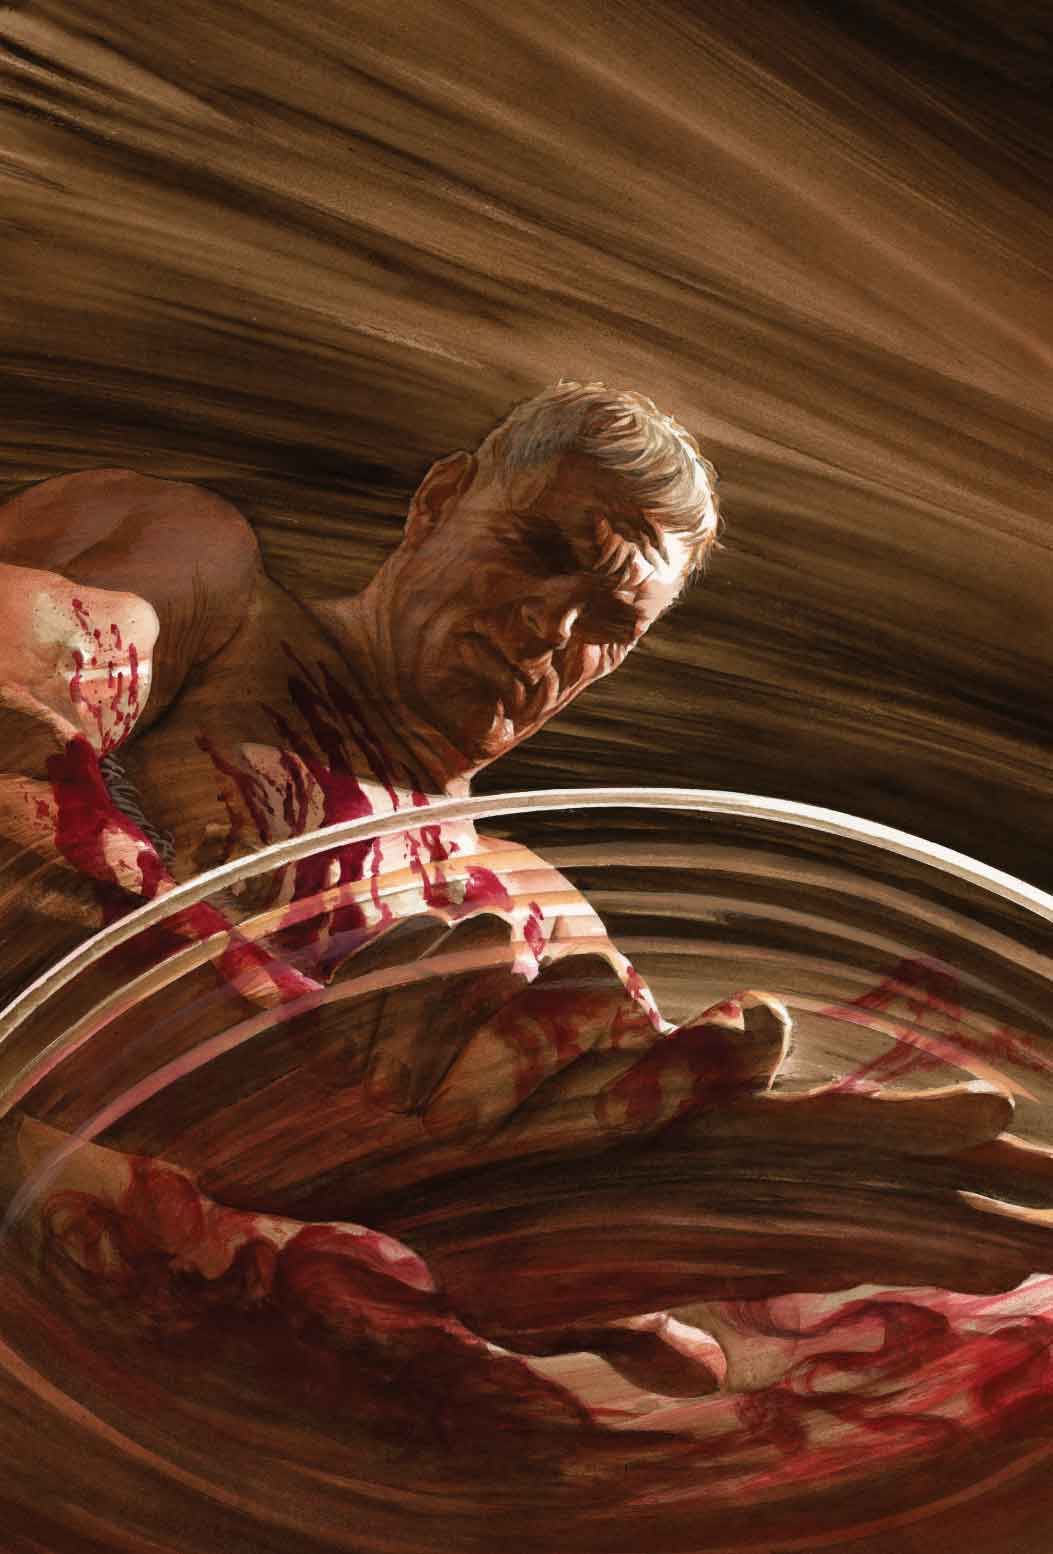 ILLUSTRATION DE COUVERTURE DE MEN OF WRATH #5, PAR ALEX ROSS